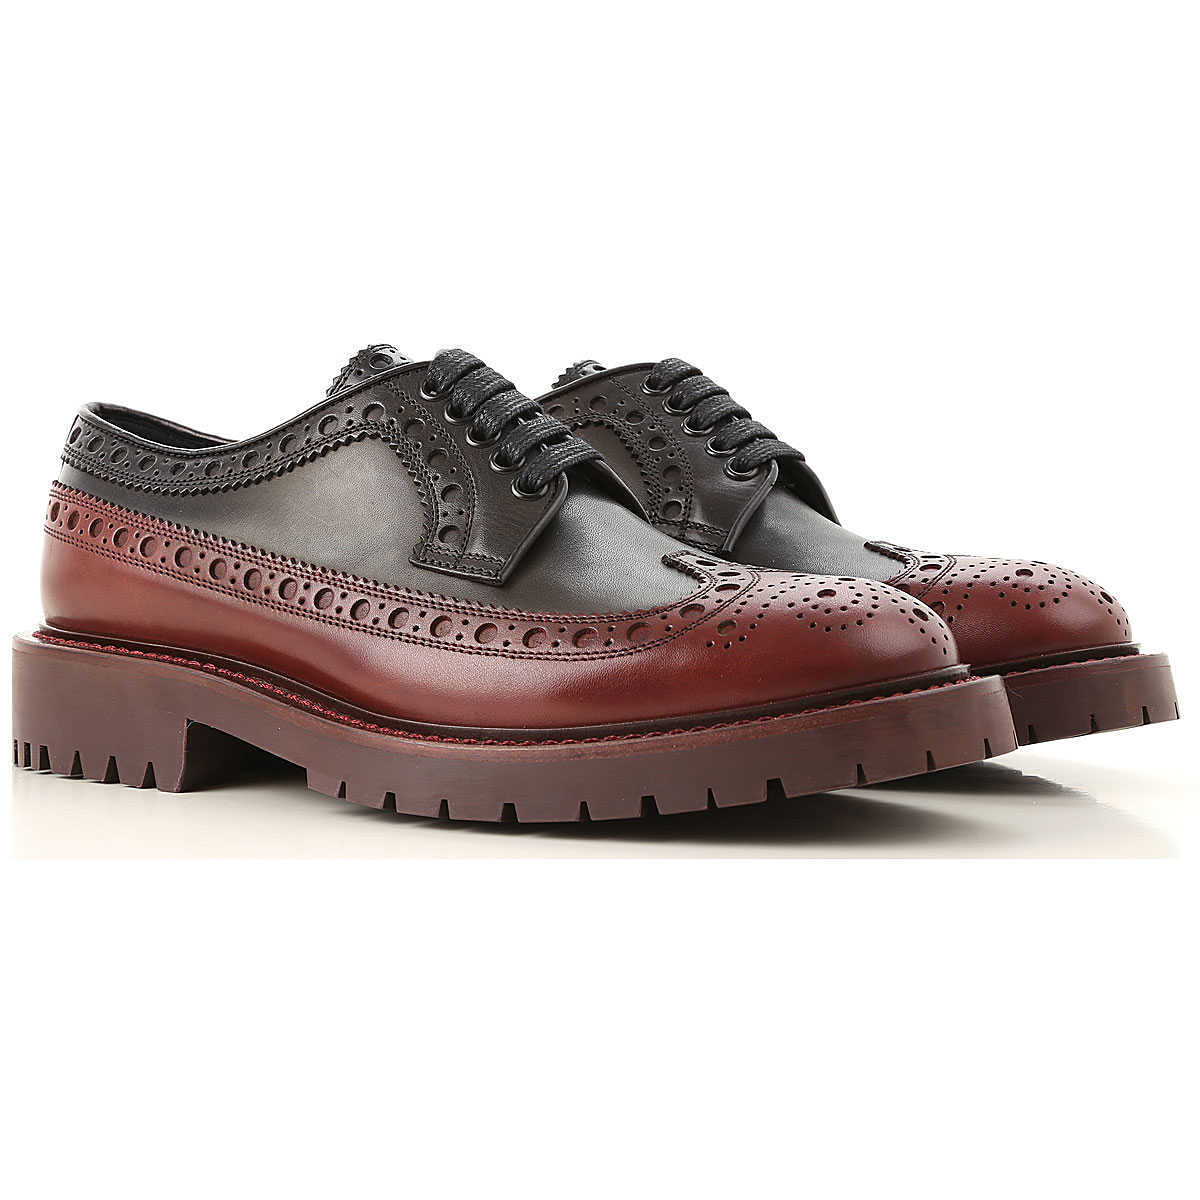 Burberry Lace Up Shoes for Men Oxfords 6 6.5 7 7.5 8.5 Derbies and Brogues On Sale UK - GOOFASH